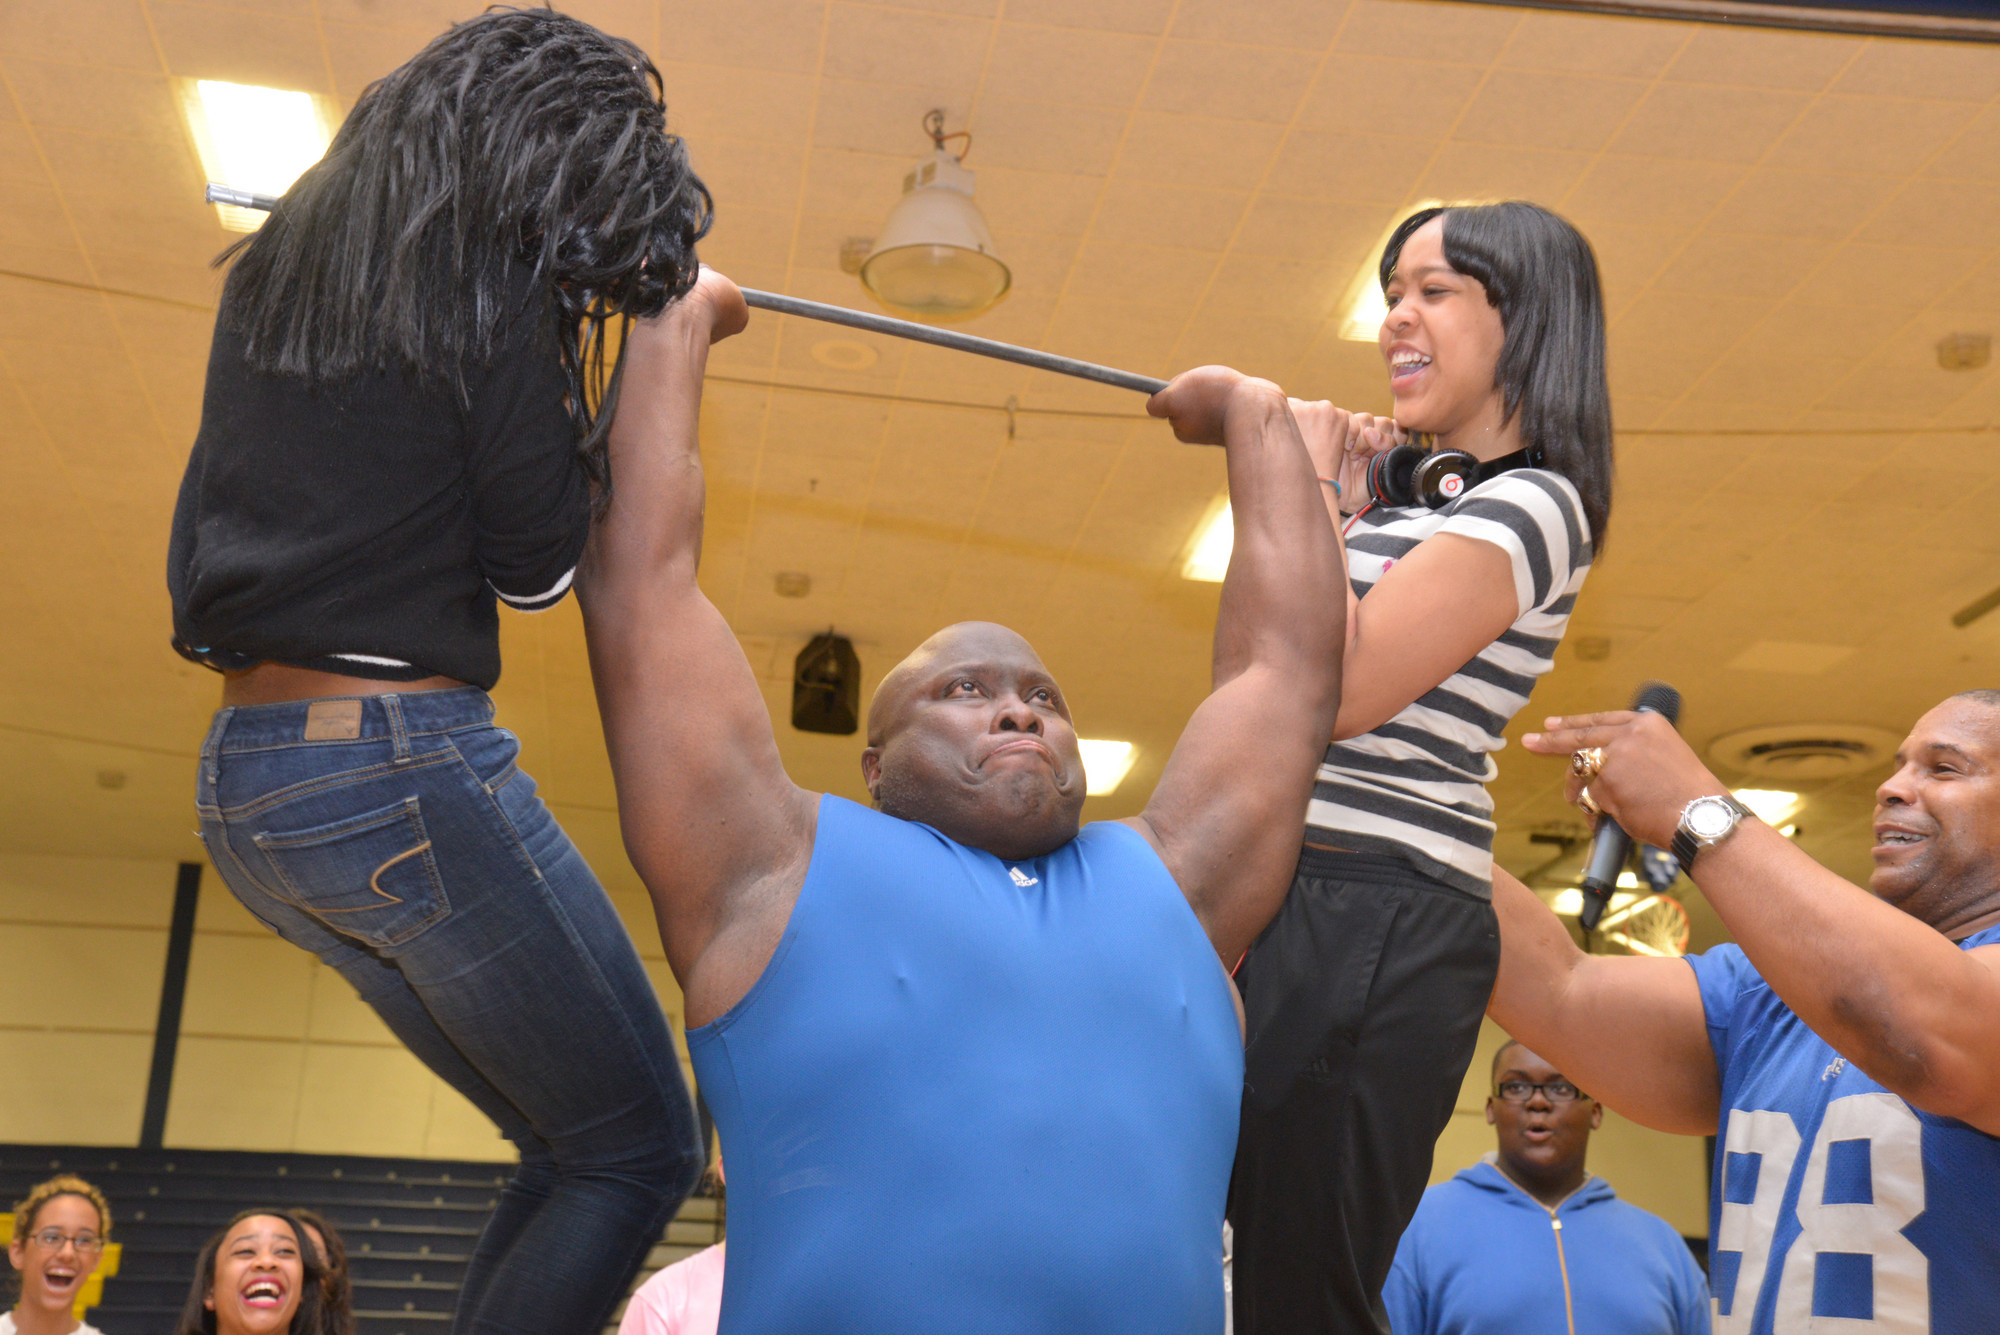 Clarence Lee, from Florida State University, lifted Nedyah Alexis and Kezia Bent as part of a motivational program at BHS.